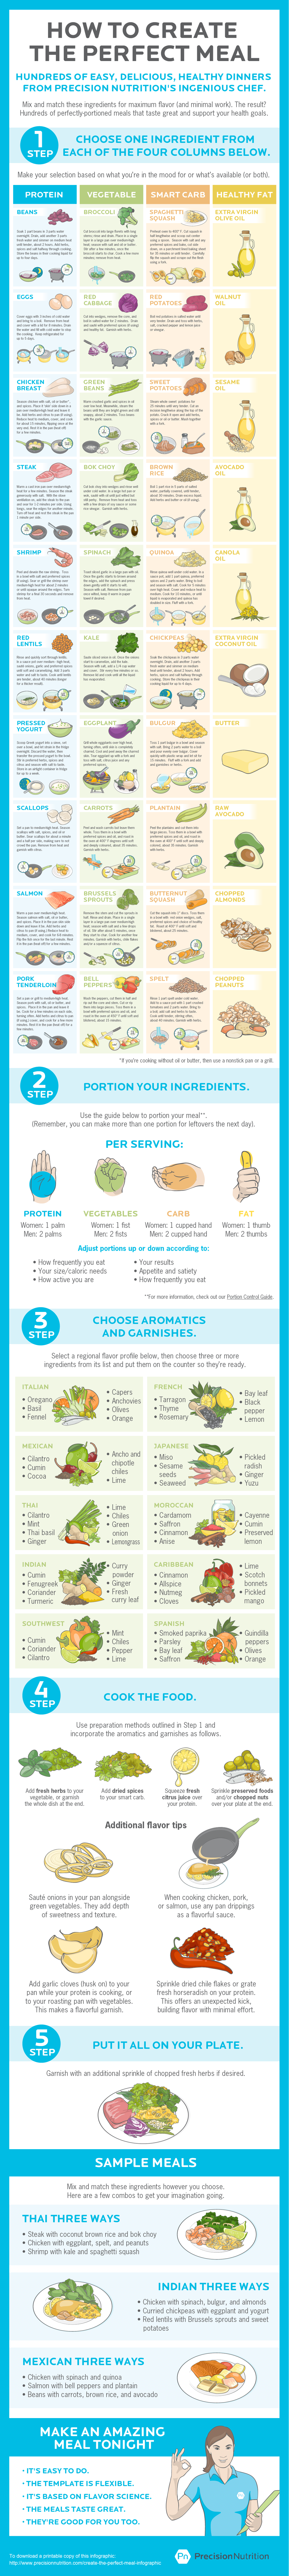 how to create the perfect meal infographic precision nutrition